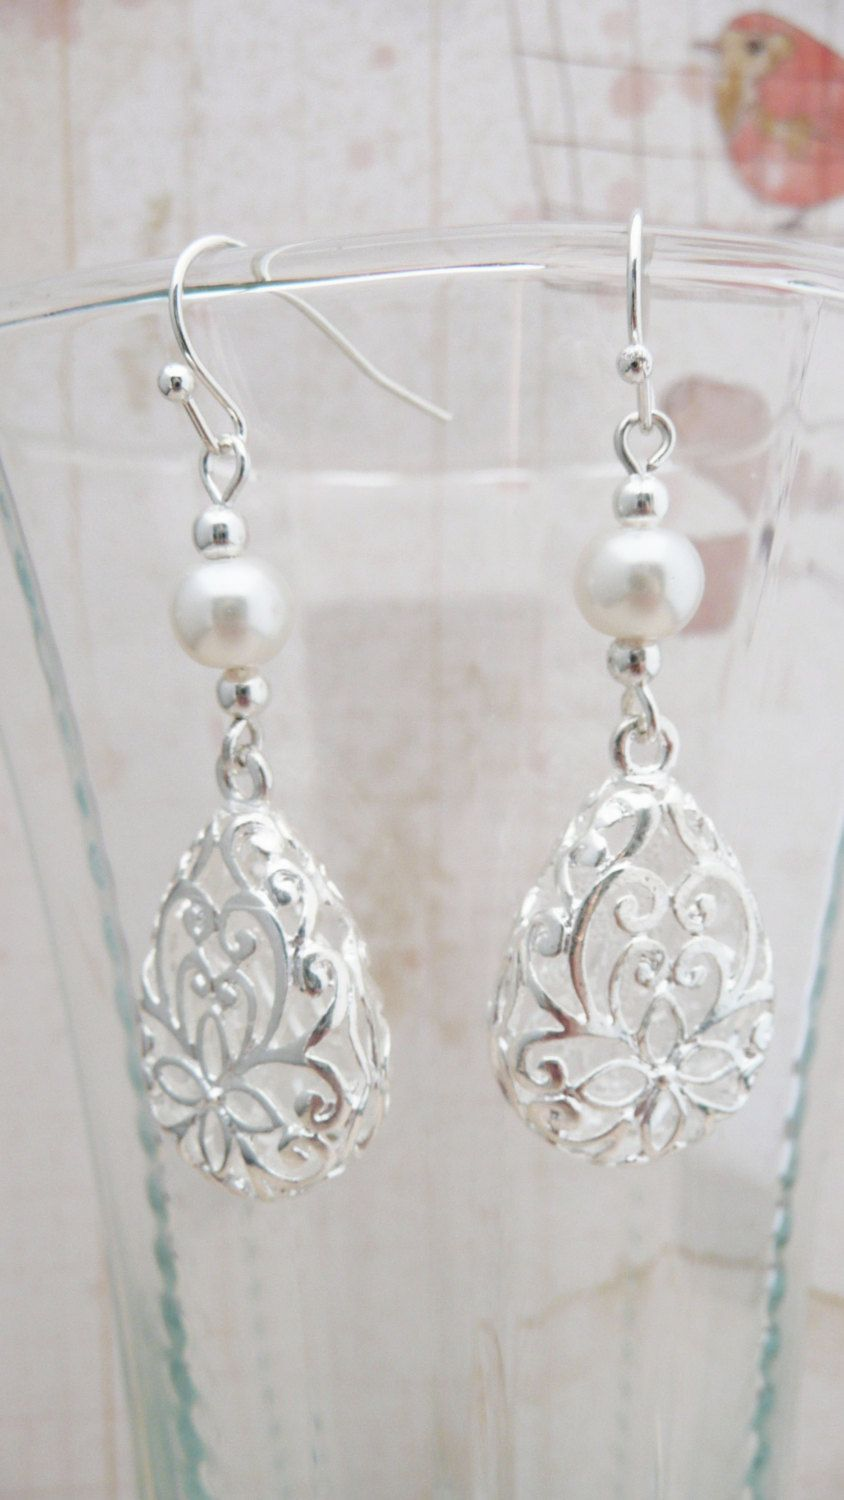 Earrings Silver filigree and pearl dangle by VerdigrisGifts, $20.00